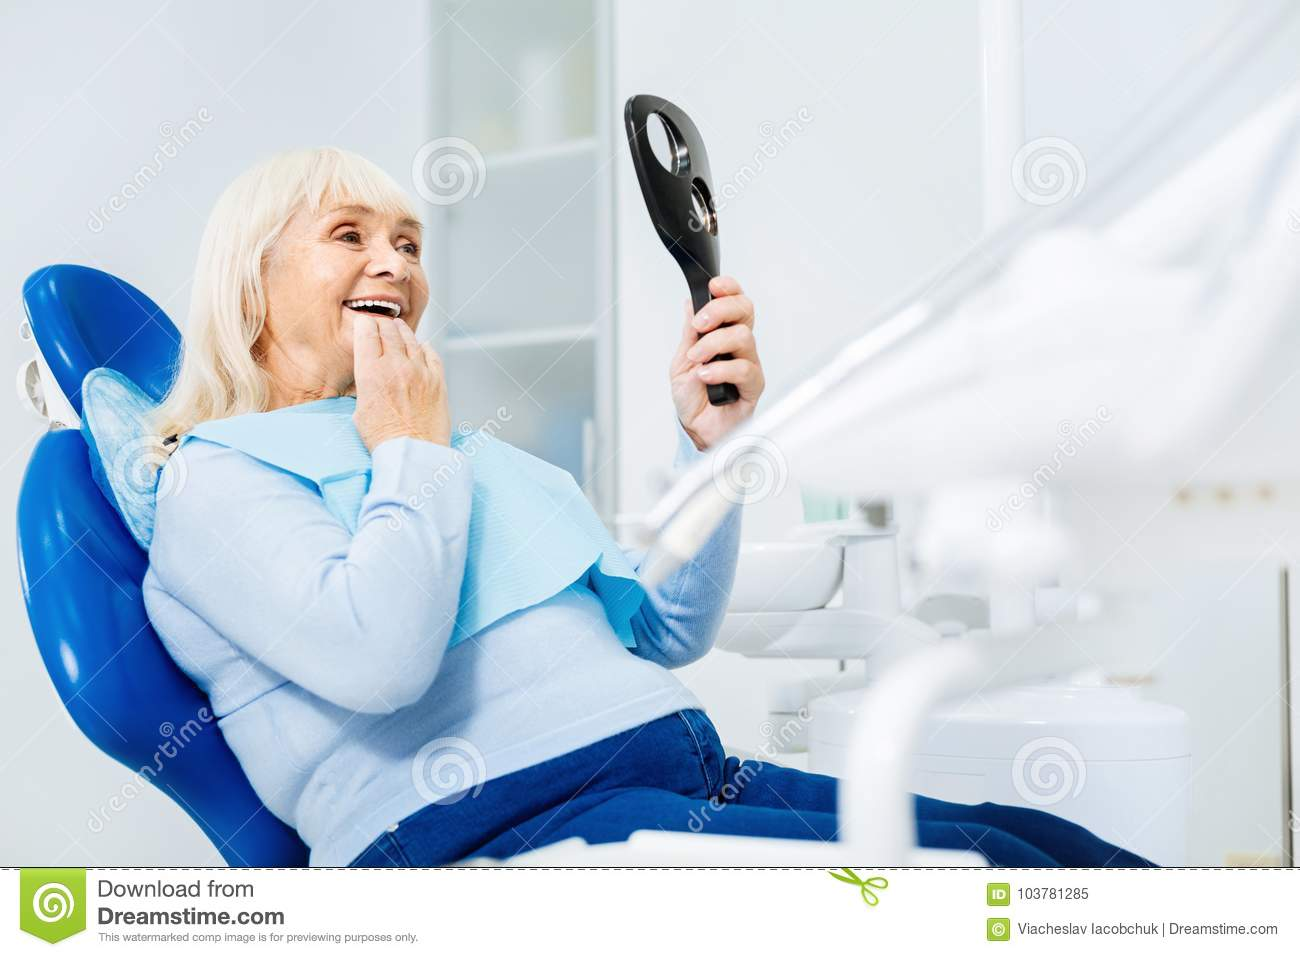 Waist up of delighted woman in dental office